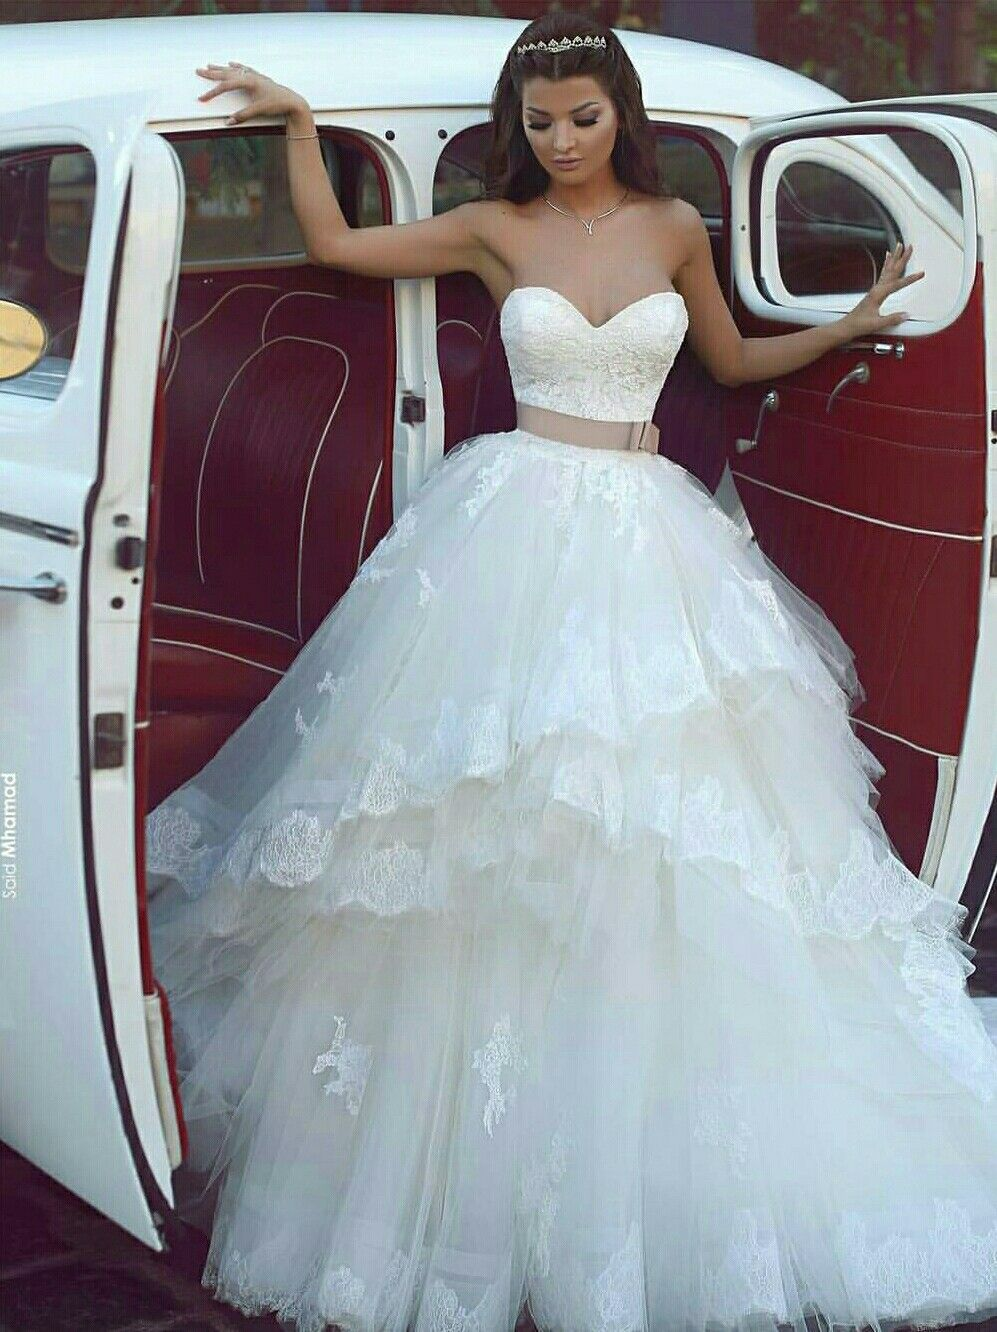 Pin by 🌹Bilge🌹 on Gelin | Pinterest | Wedding dress, Wedding and ...